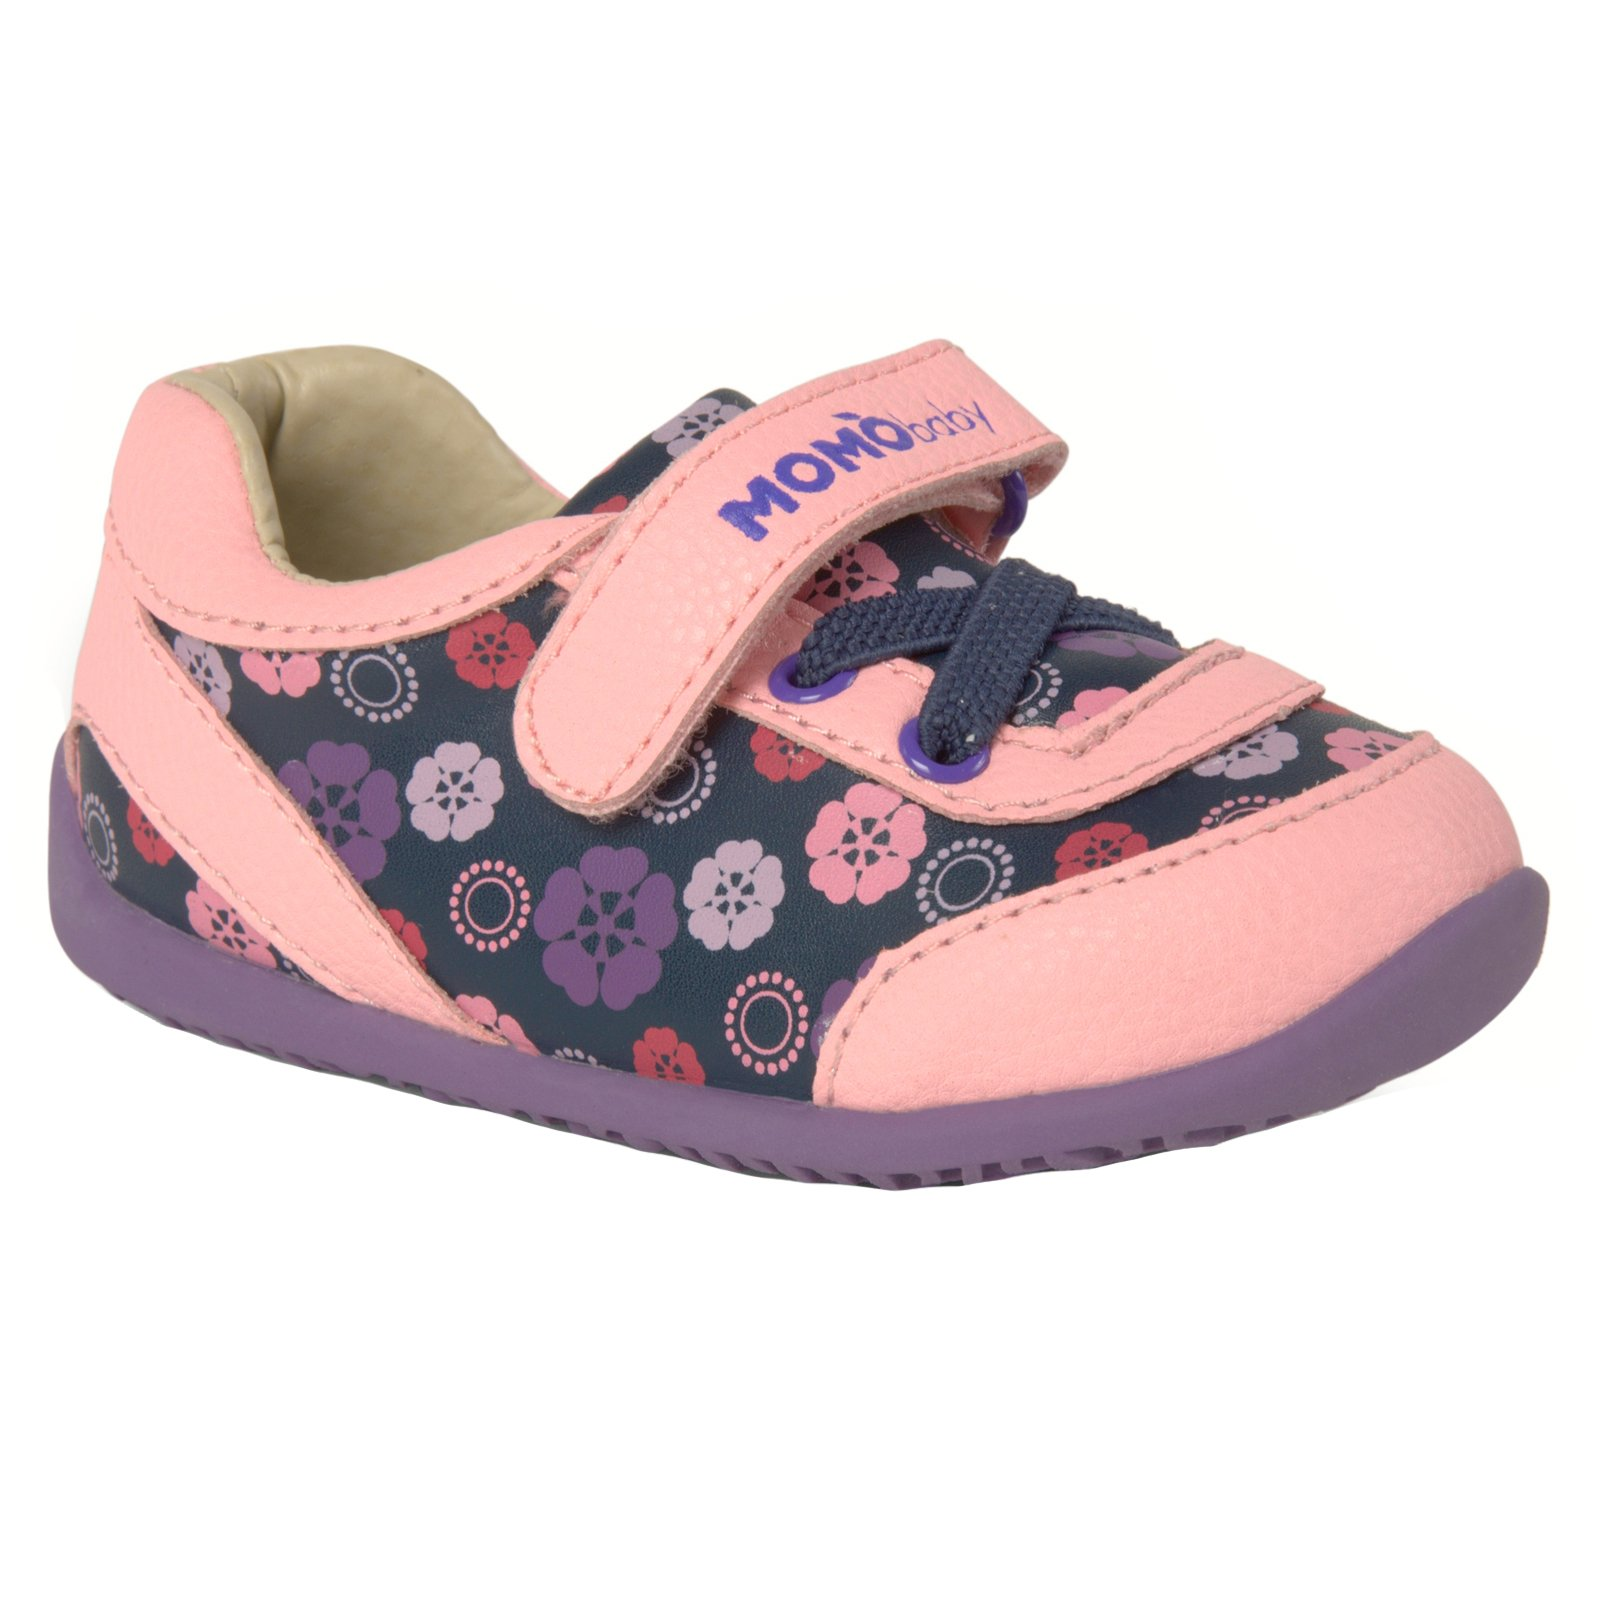 Momo Baby Girls First Walker/Toddler Heather Sneaker Shoes - 5 M US Toddler